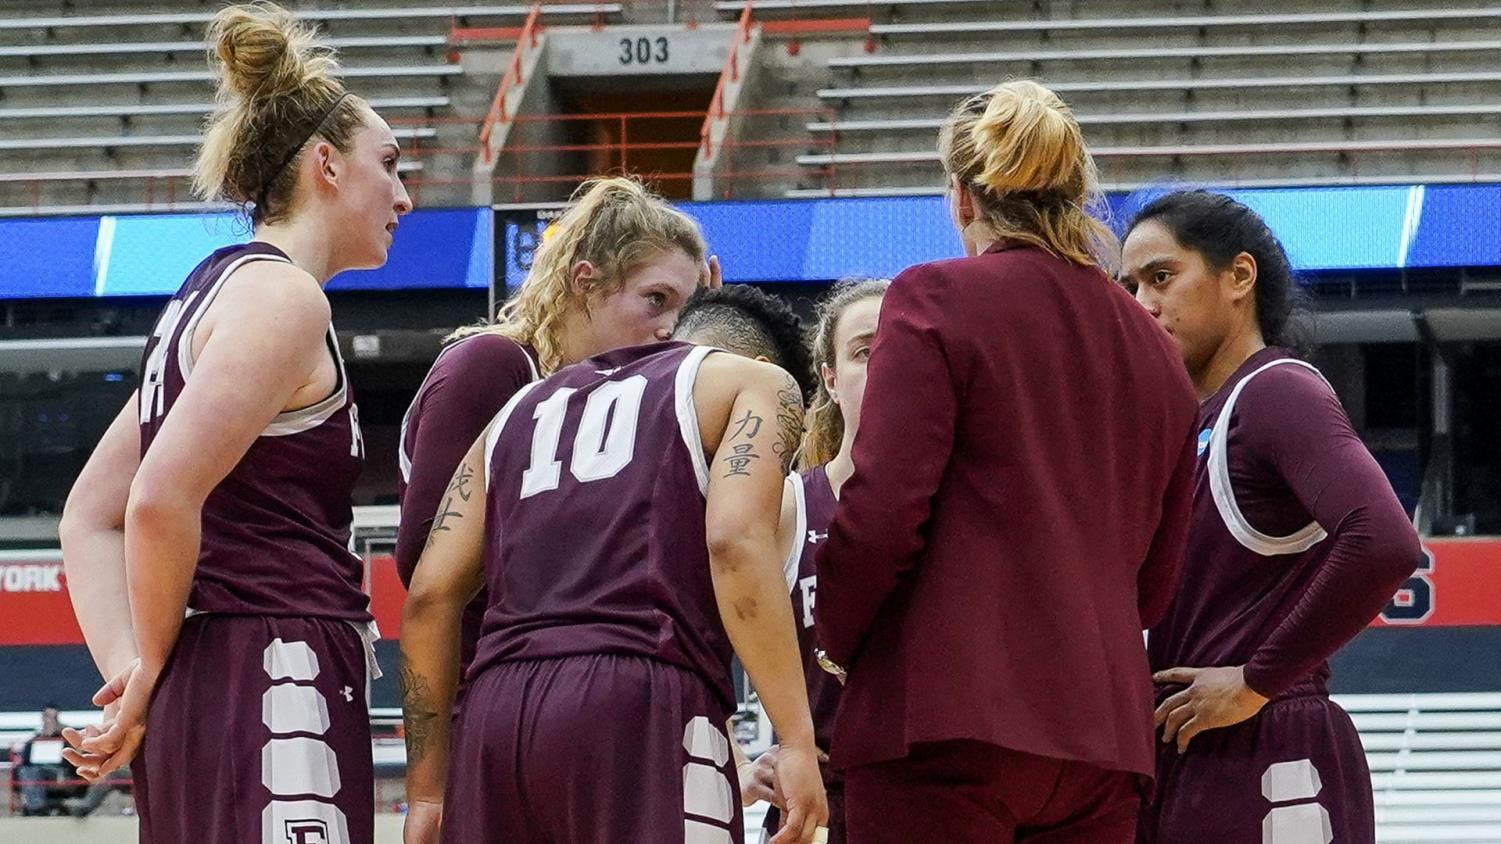 Fordham huddles as a team during Saturday's loss to Syracuse. (Courtesy of Fordham Athletics)